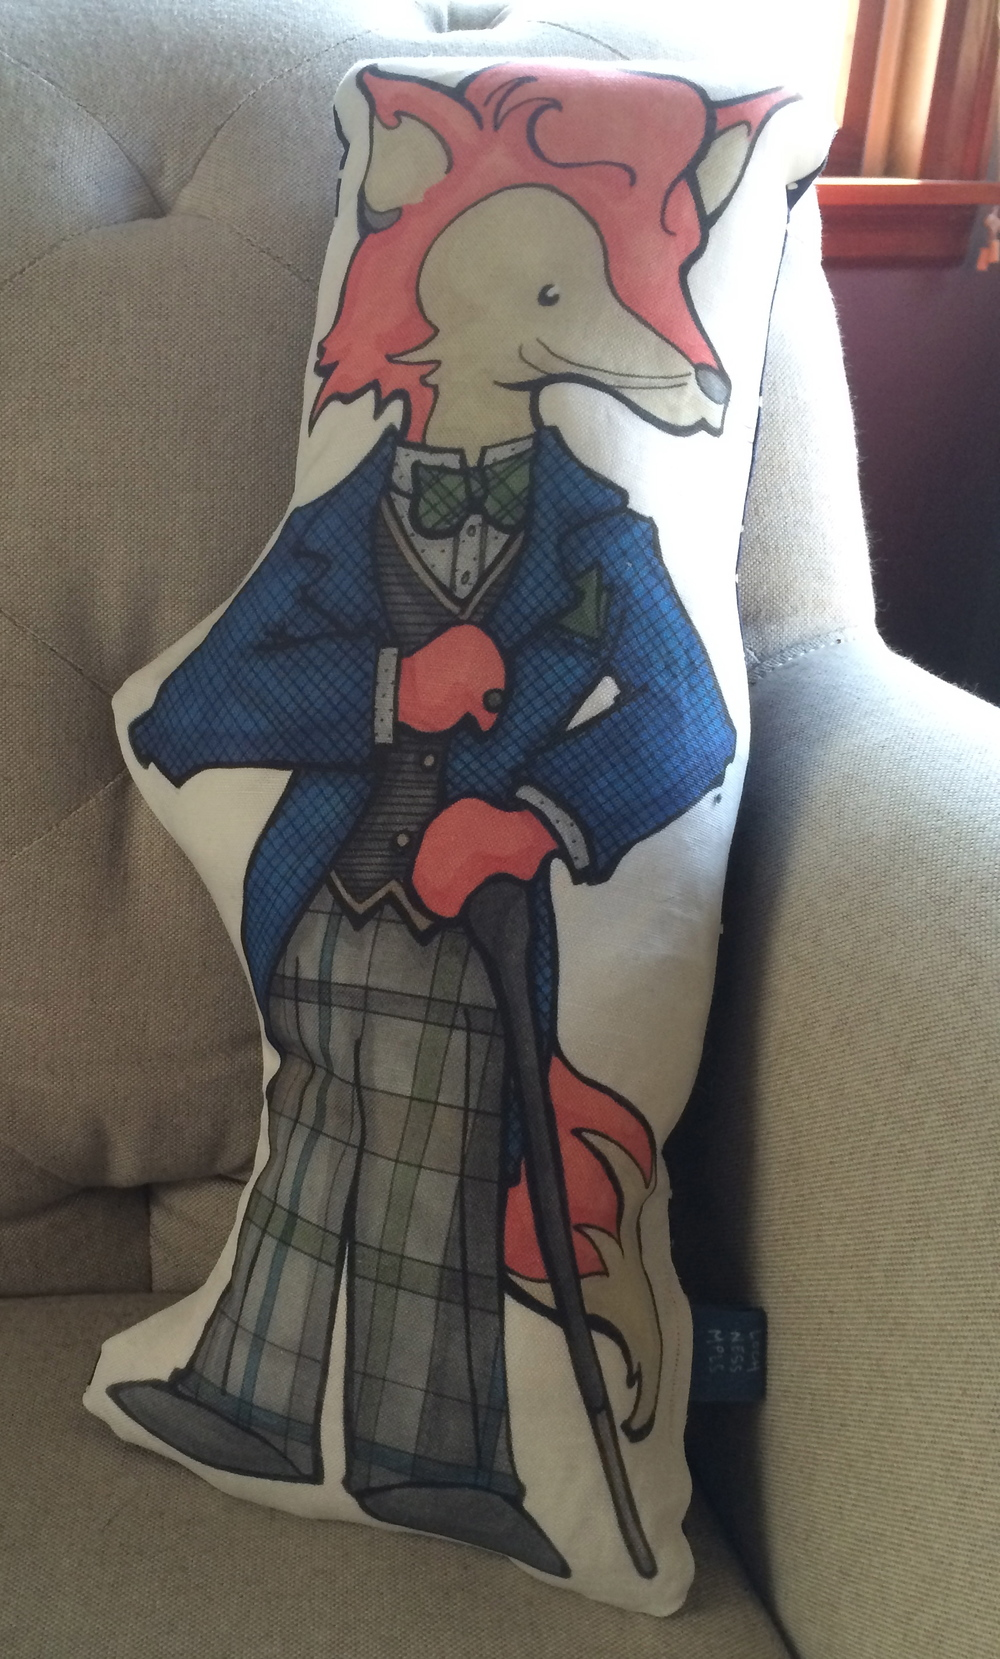 Fine and Dandy asked if I had any dandy-themed pillows in the works. I figured it was about time, and came up with this Fox!